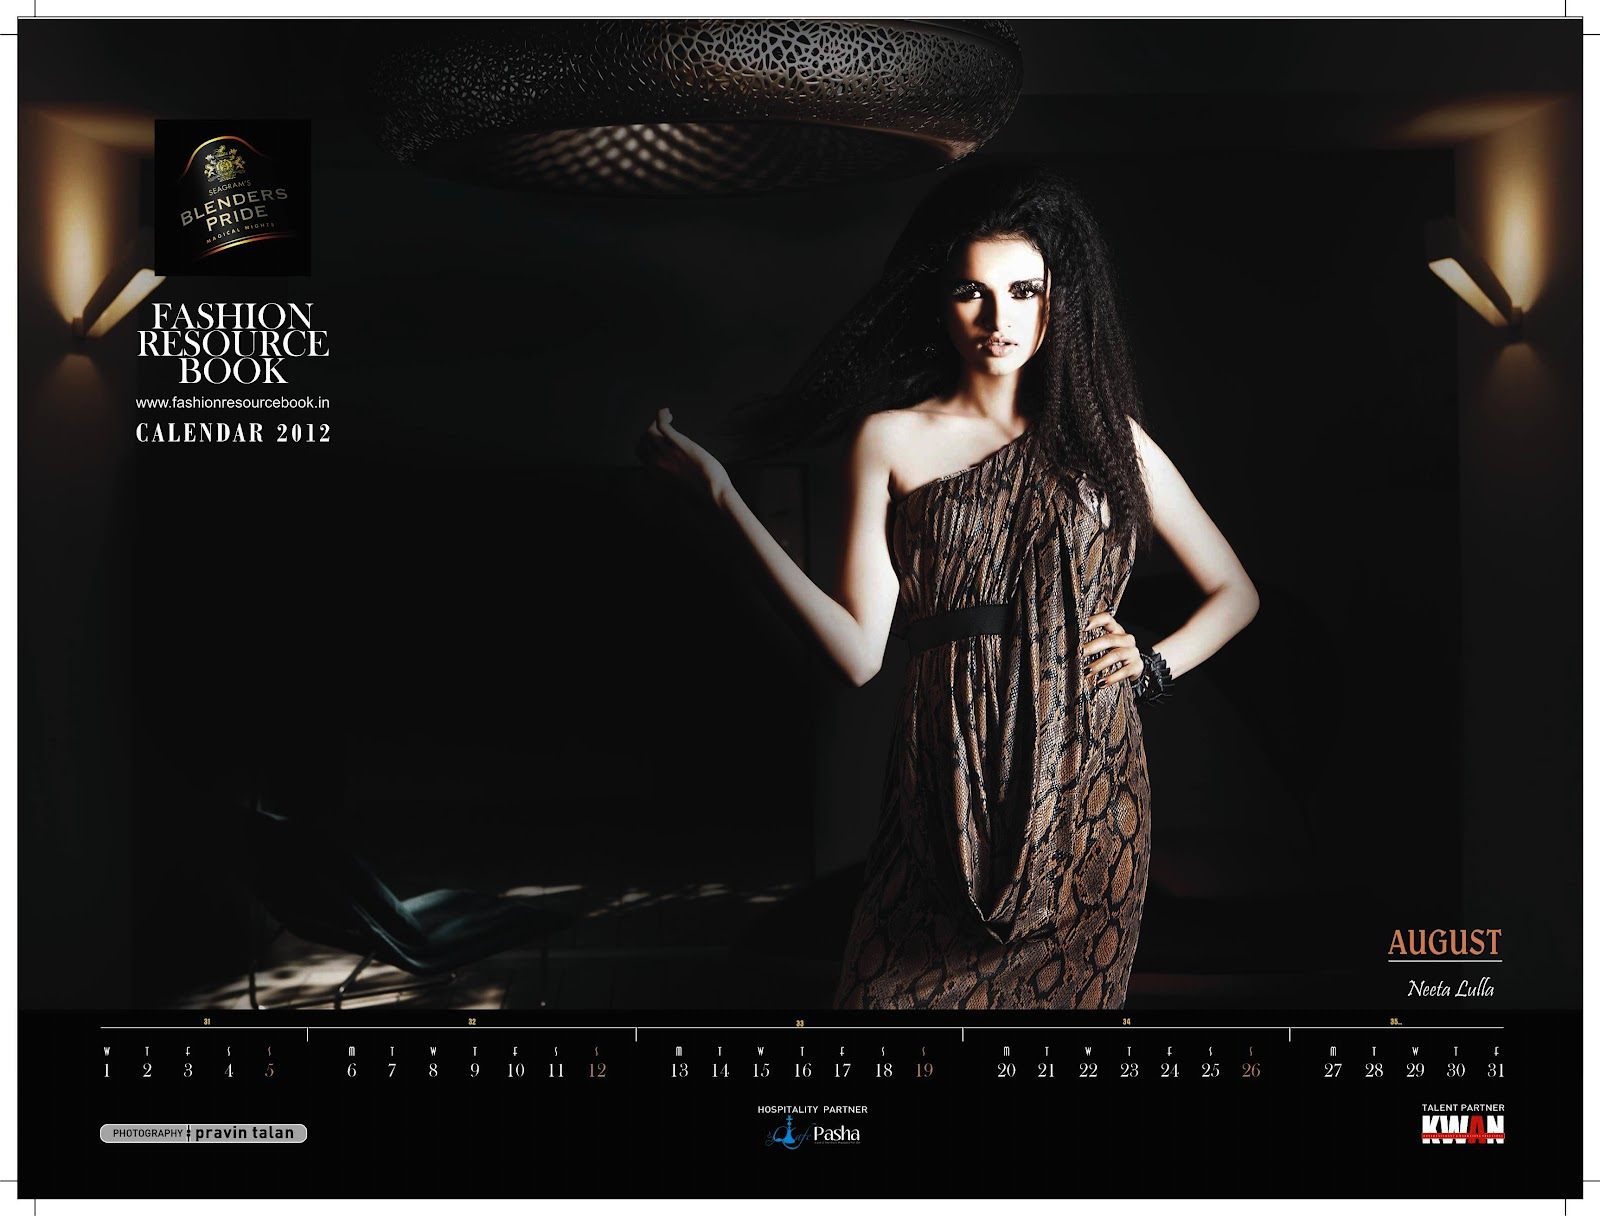 Blenders Pride Fashion Resource Book Calendar 2012